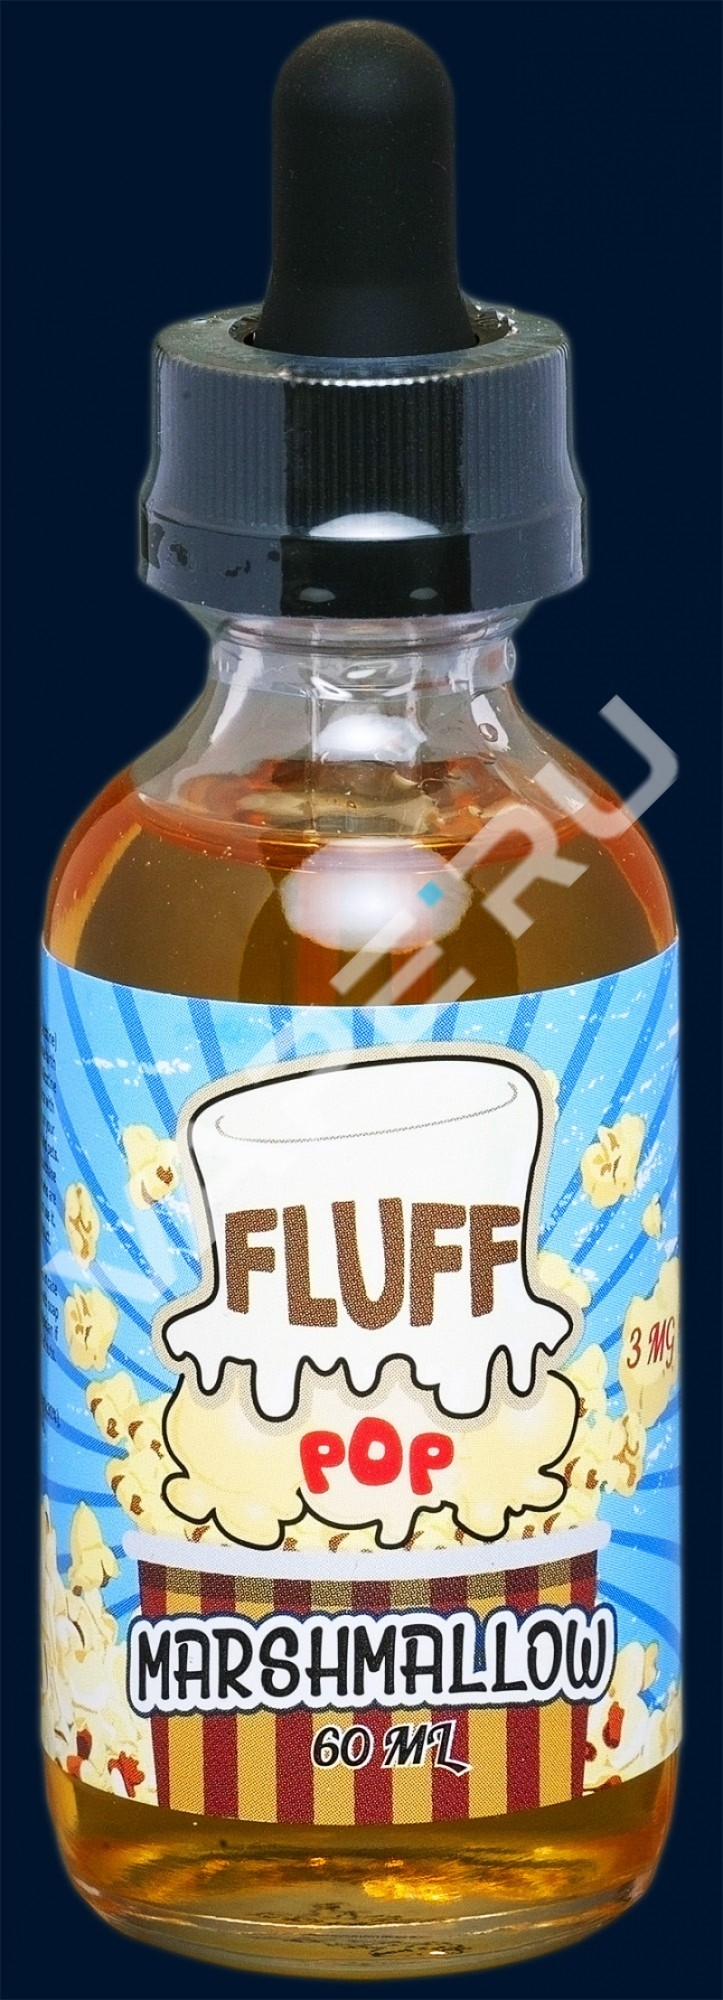 Fluff Pop, Marshmallow, 60 ml